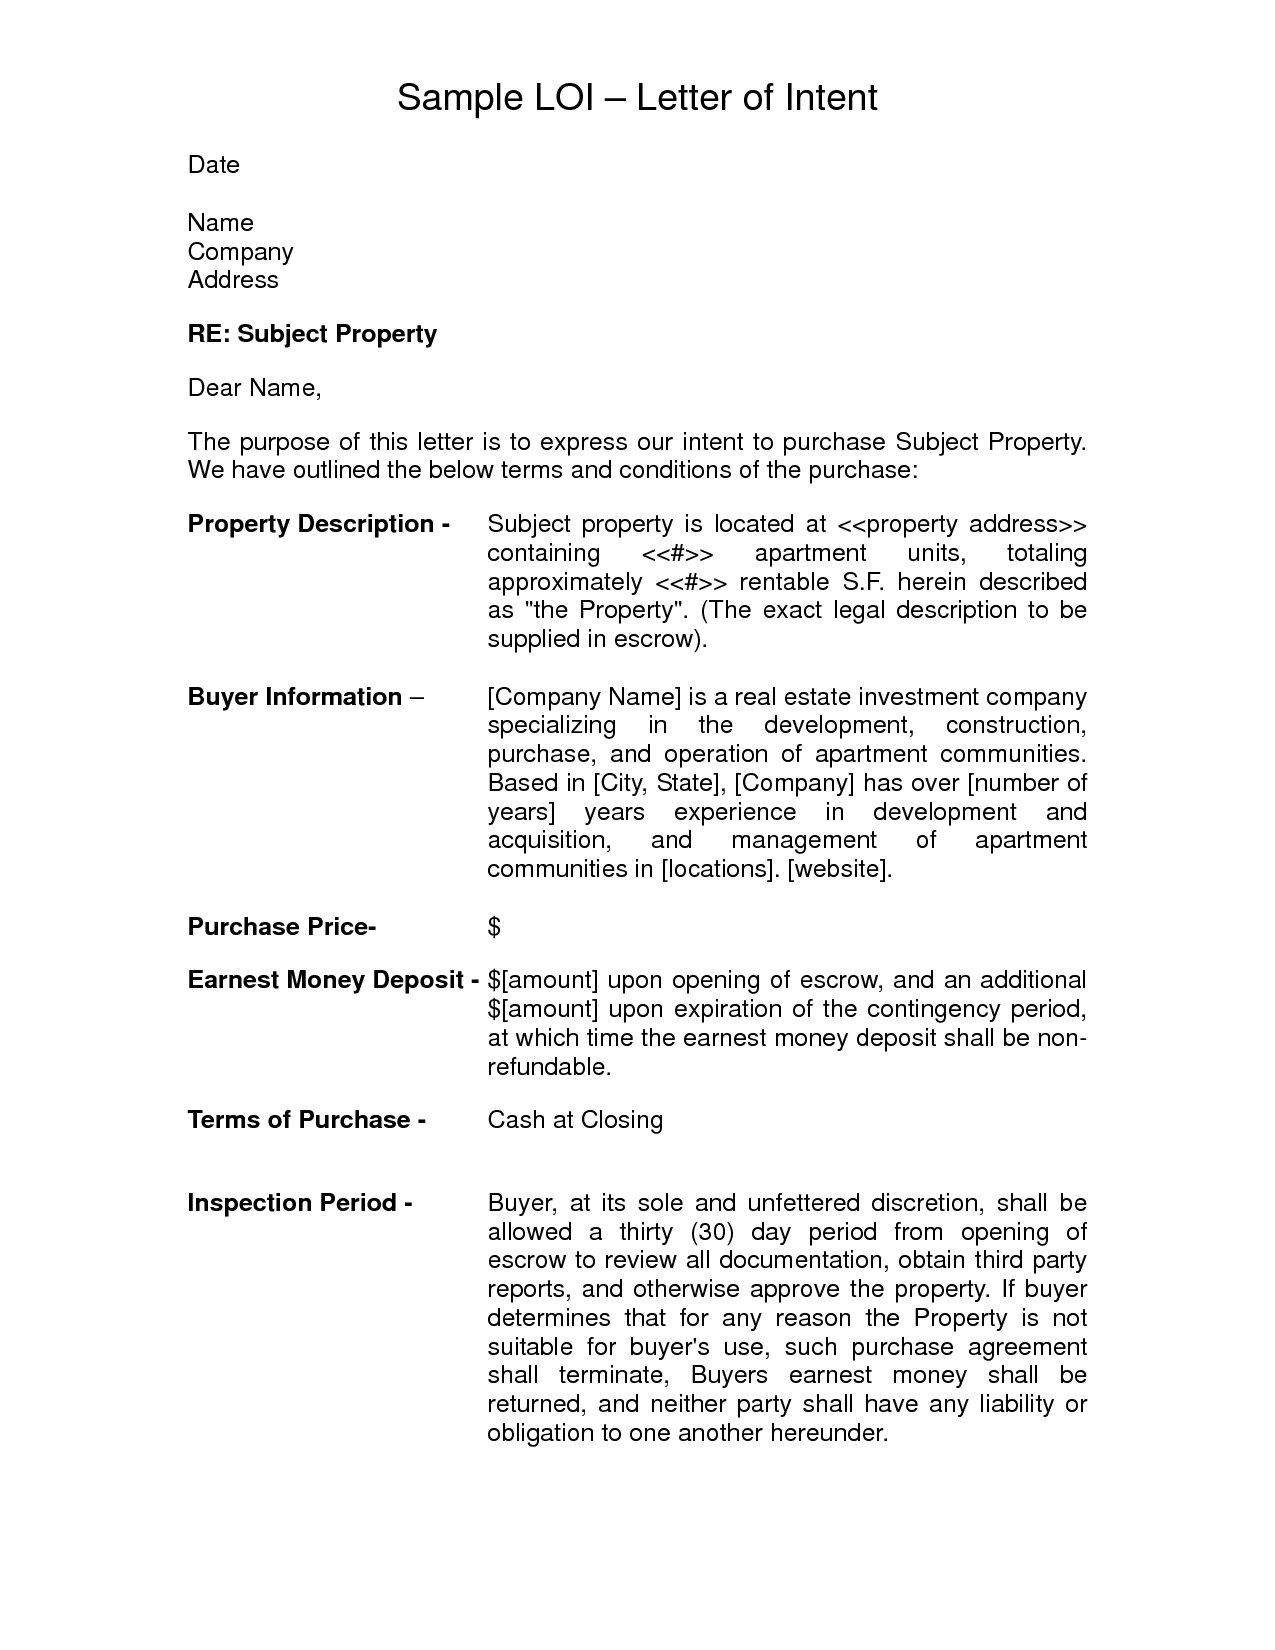 10+ sample acquisition agreement templates. Letter Of Intent For Real Estate Purchase Template Bicim